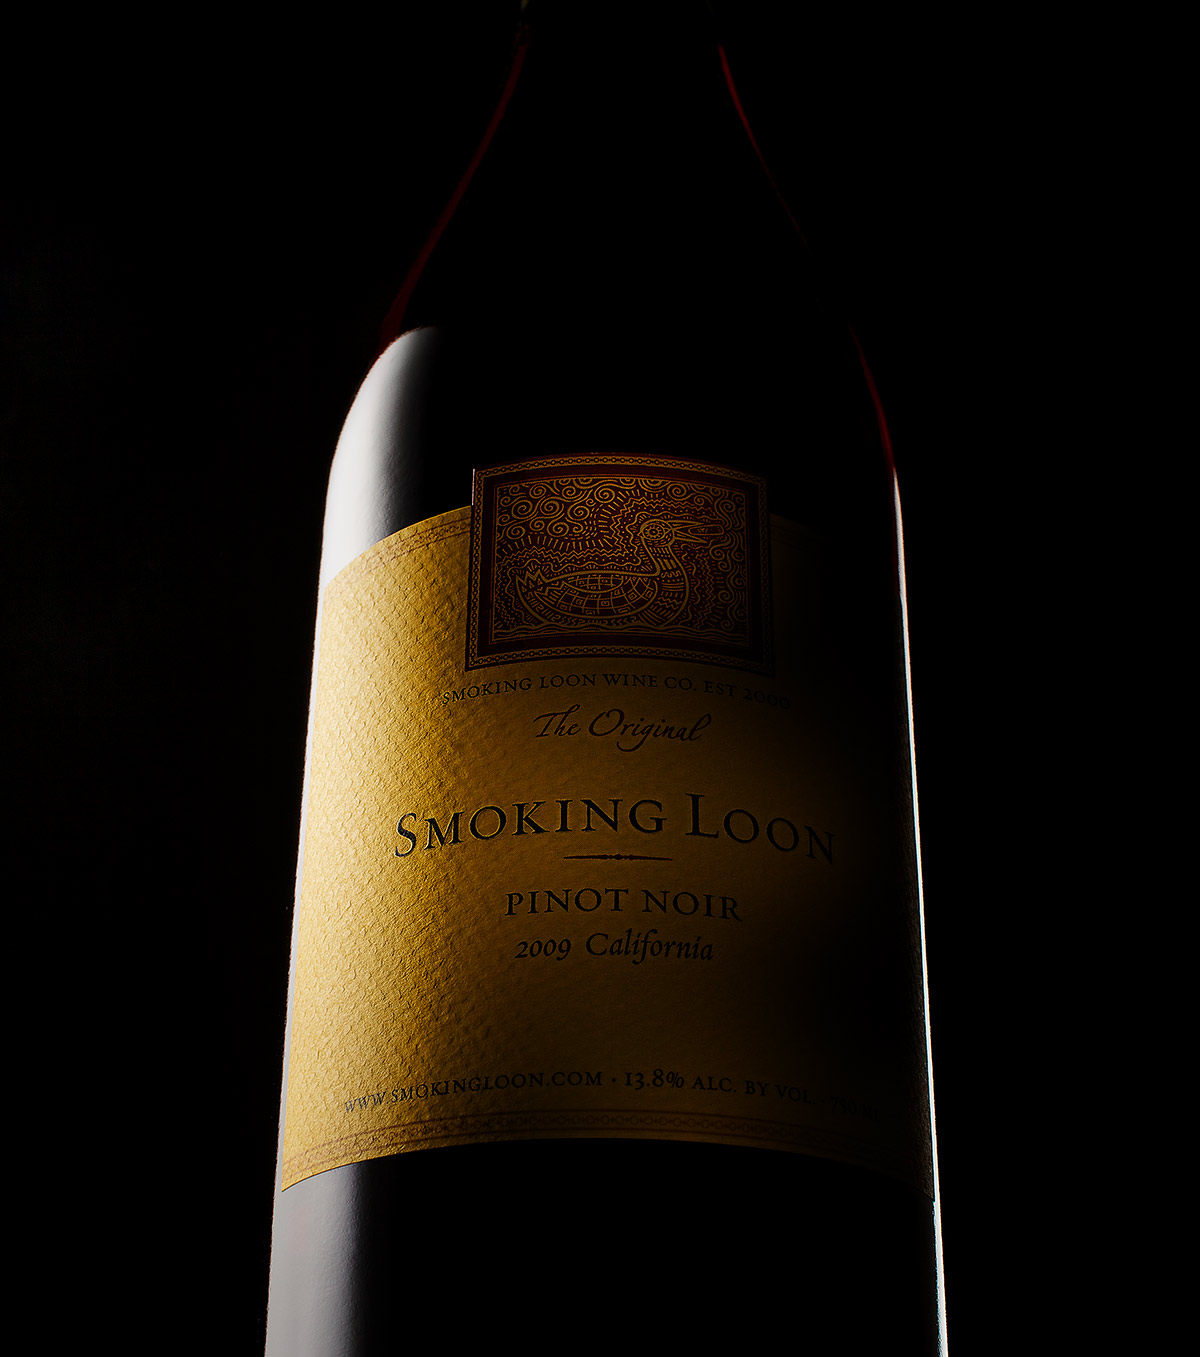 Smoking Loon Pinot Noir Wine Bottle | Dovis Bird Agency Reps